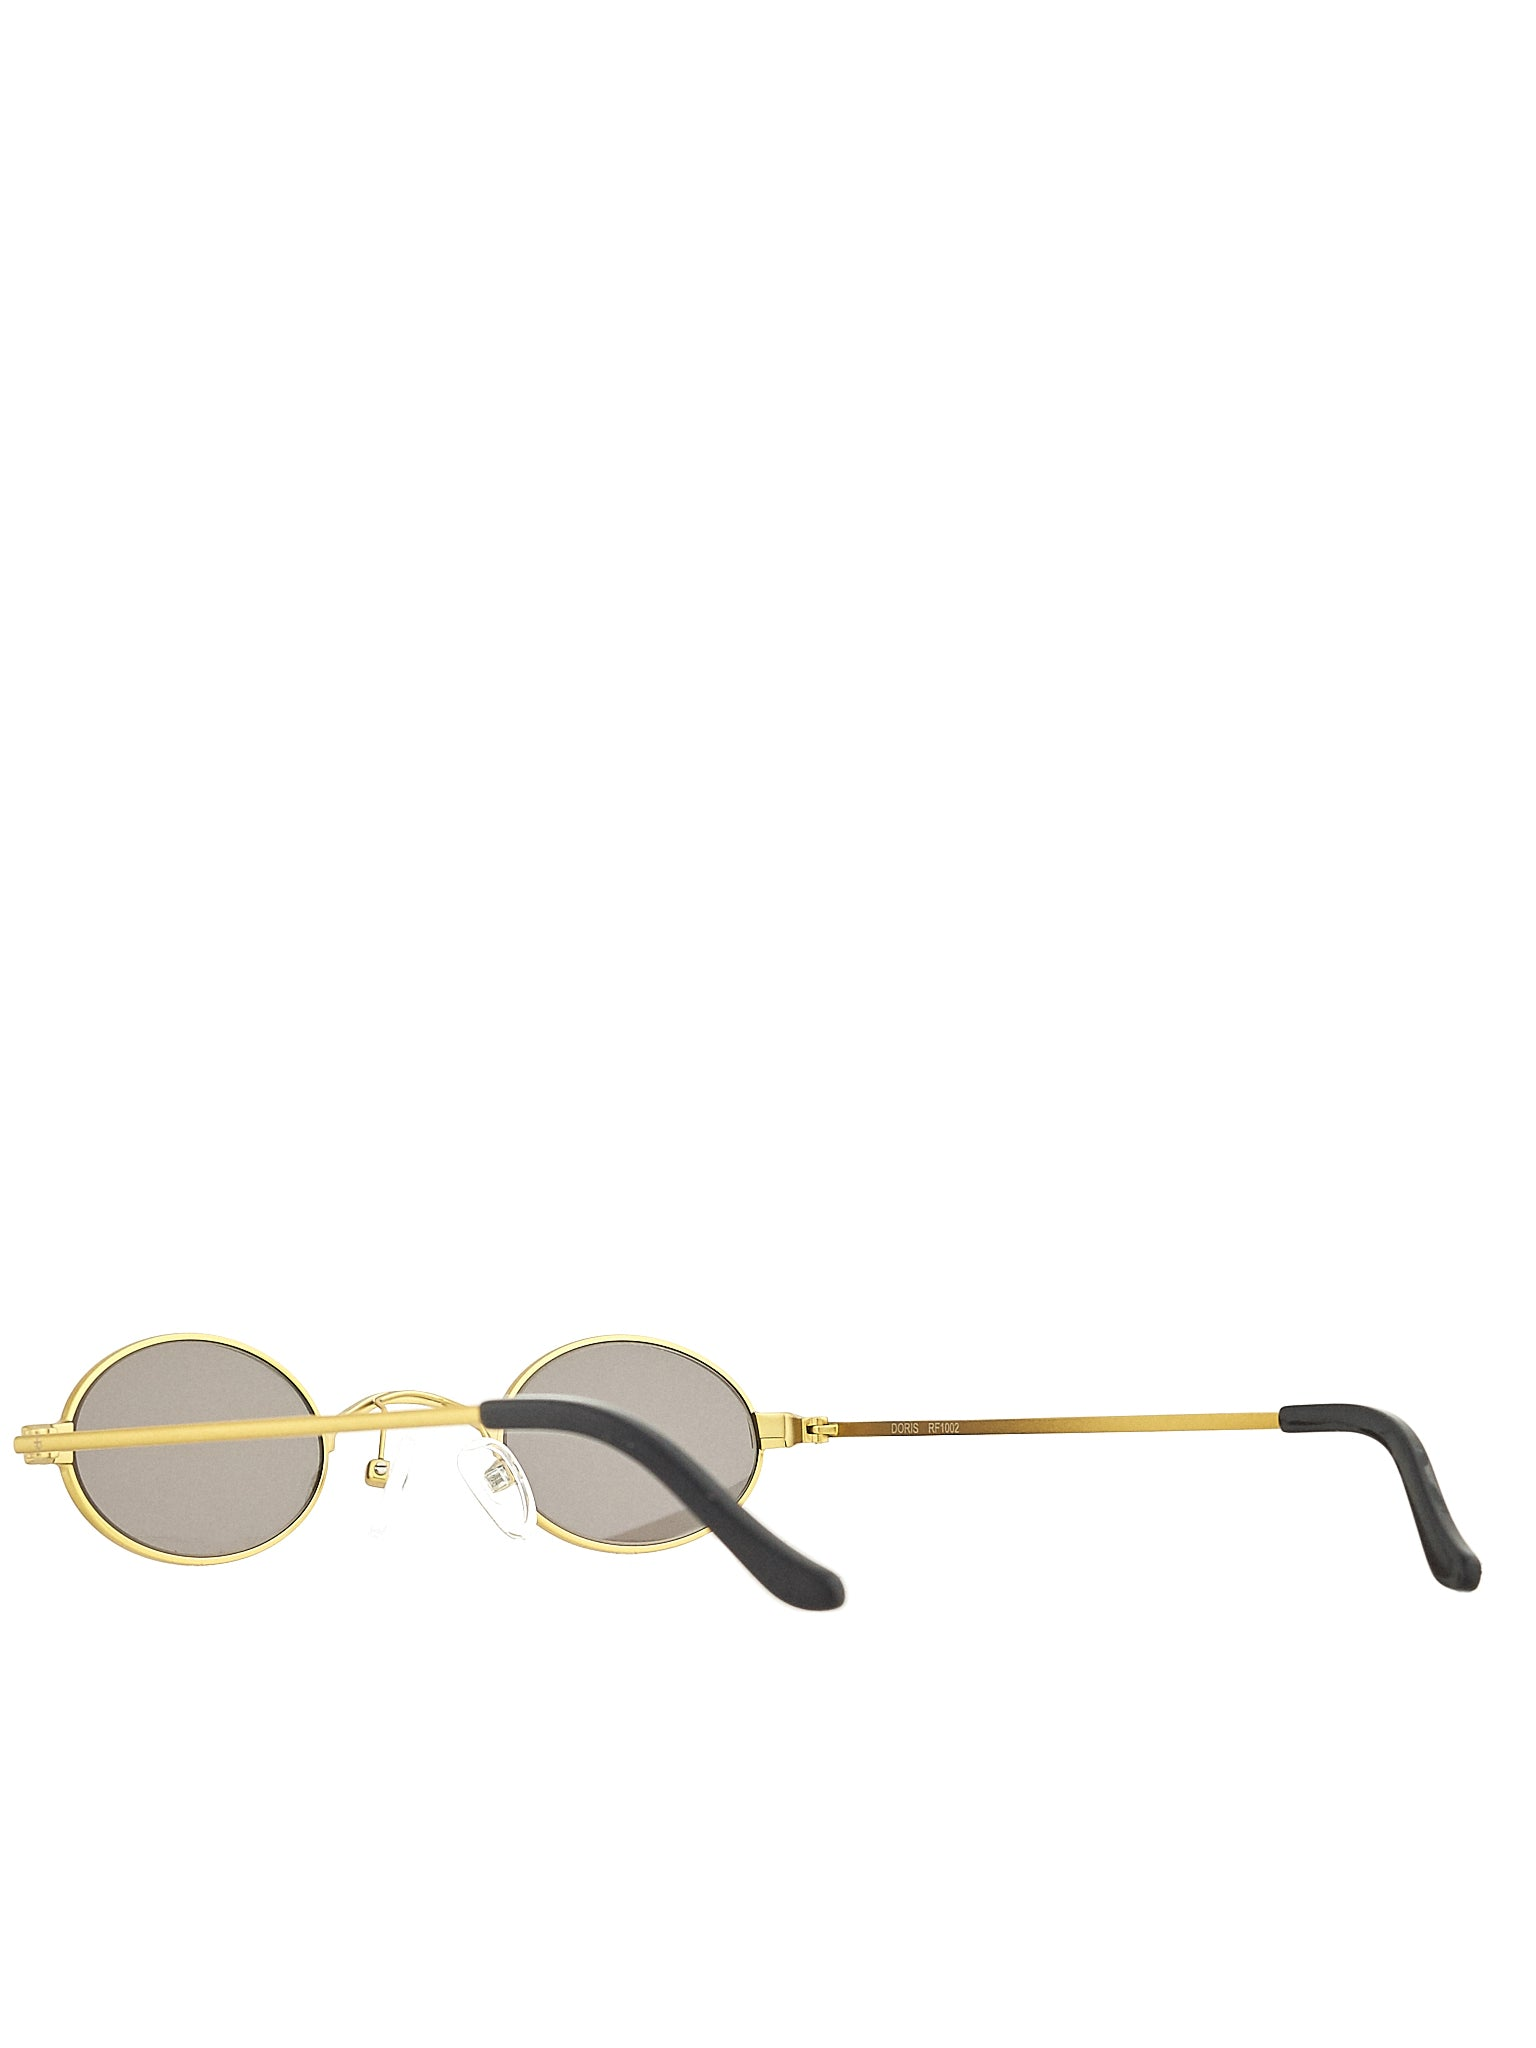 Roberi & Fraud Gold Sunglasses - Hlorenzo Detail 2